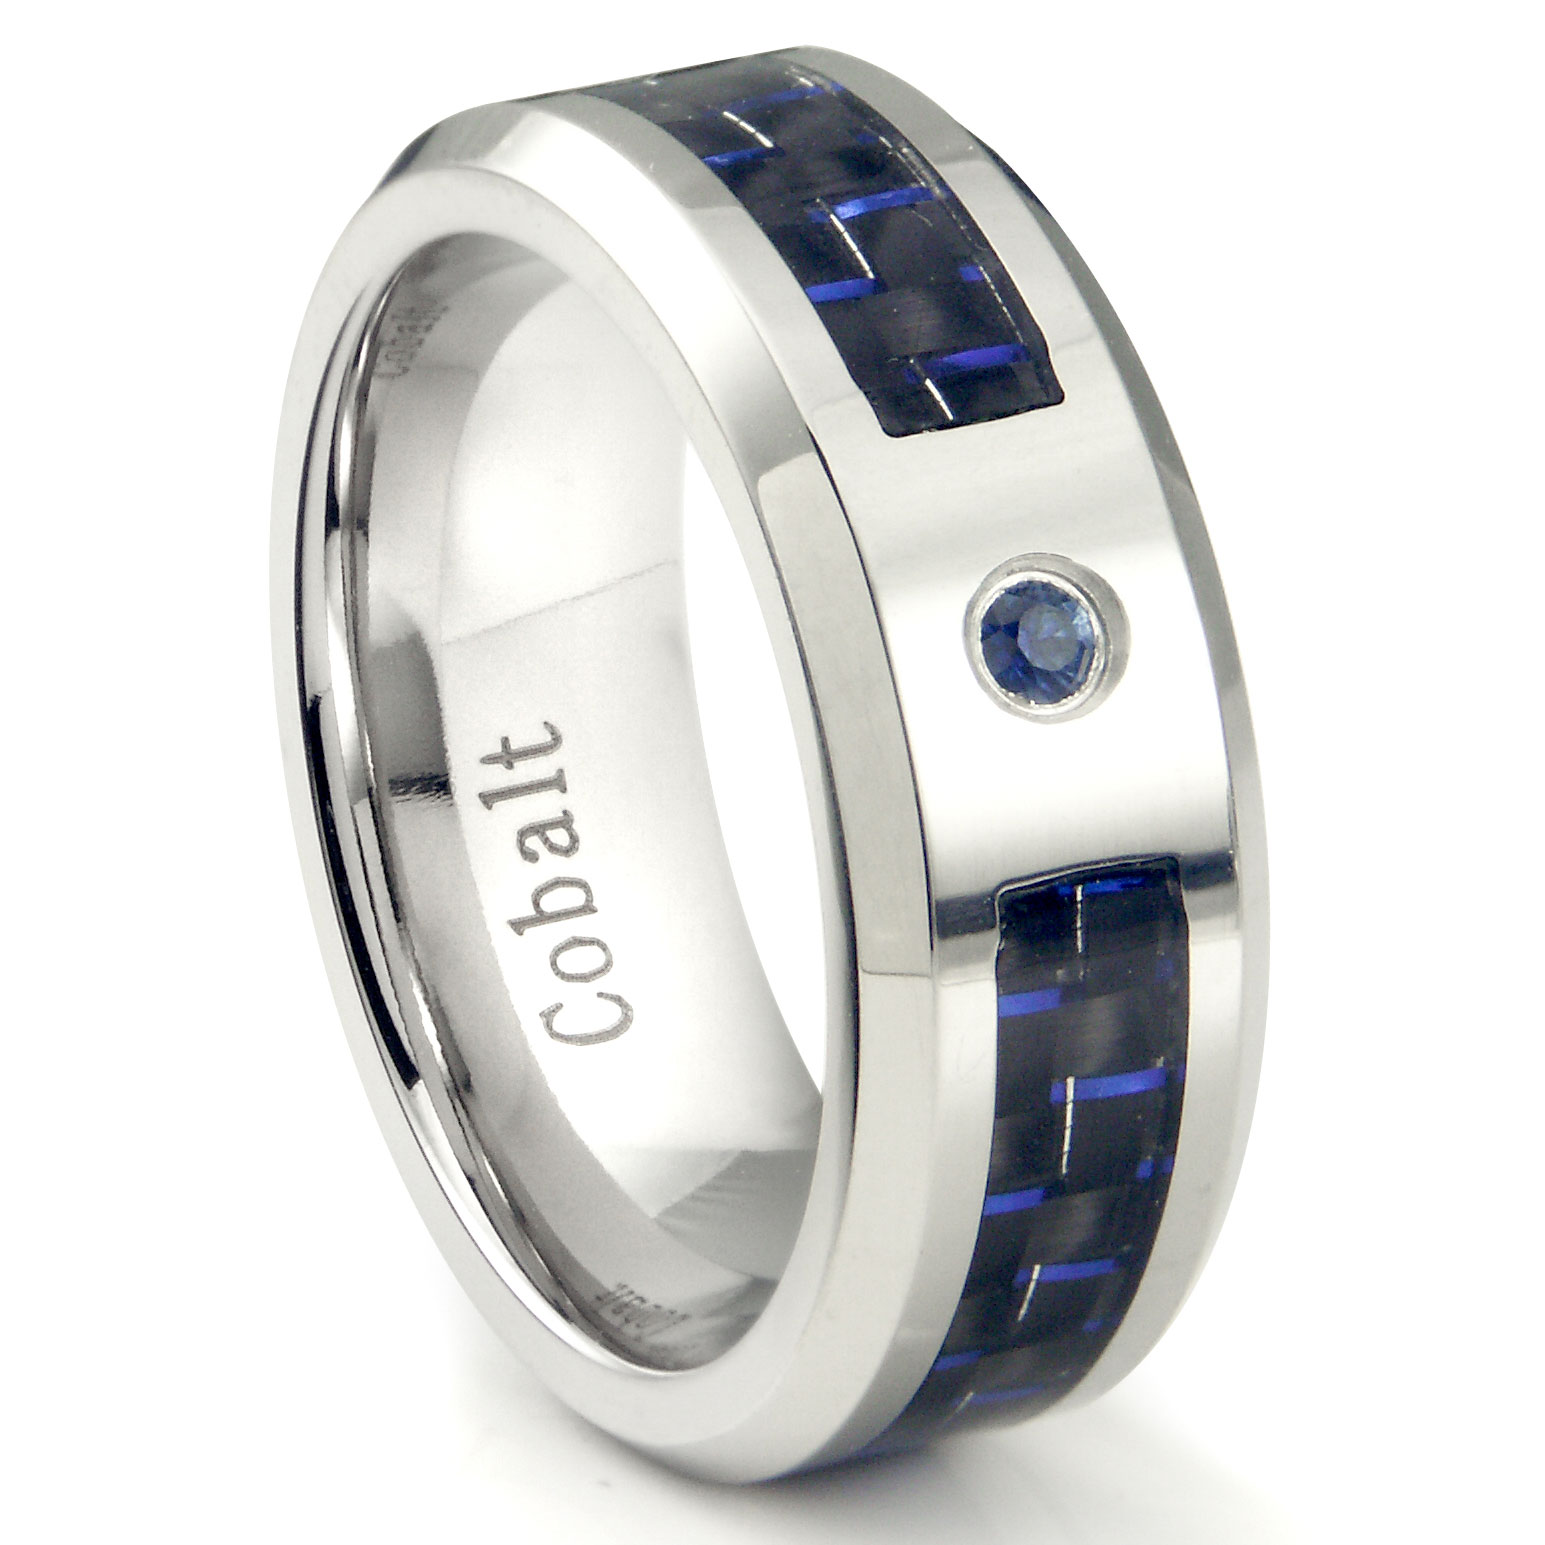 pipe chrome diamond wedding loading cut band black home ring zoom cobalt rings